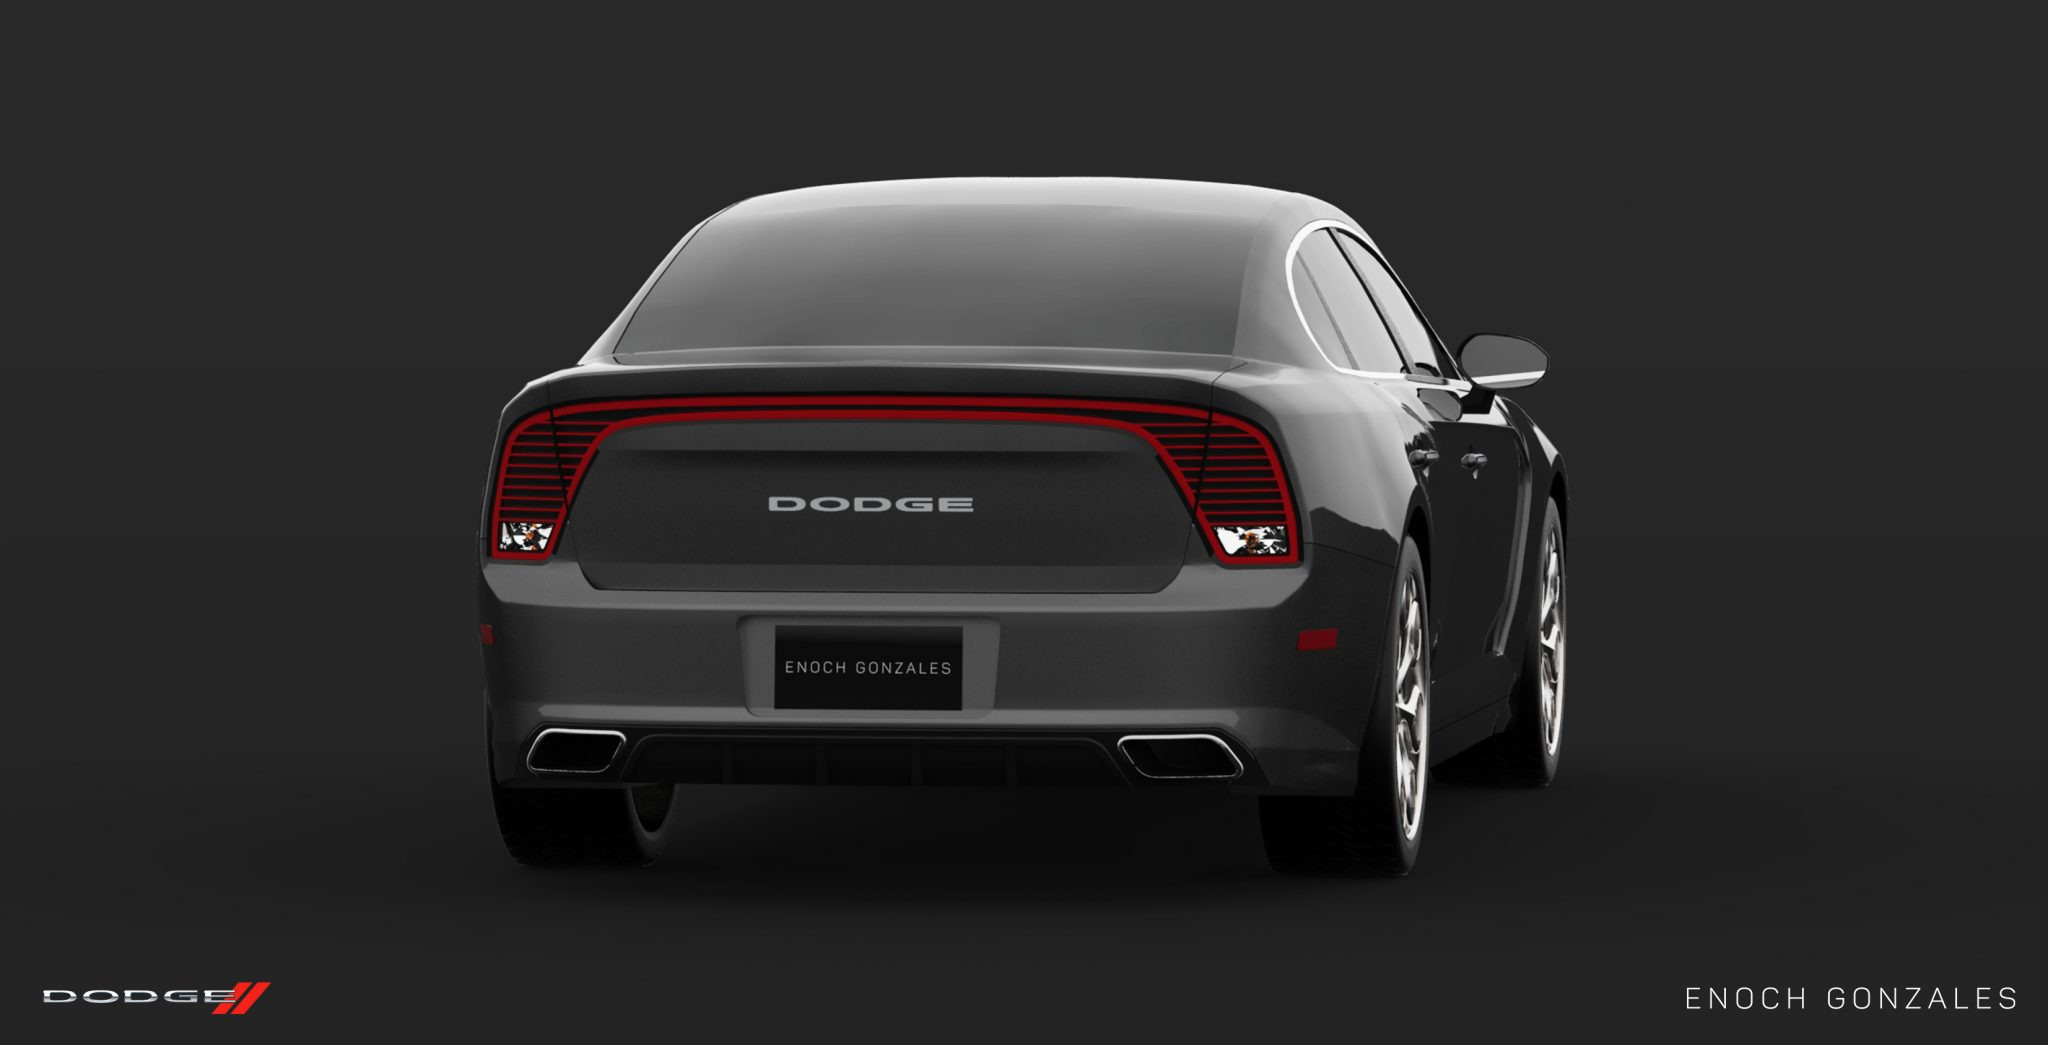 2017 Dodge Charger Srt Hellcat >> Would the 2019 Dodge Charger look like this? - ForceGT.com